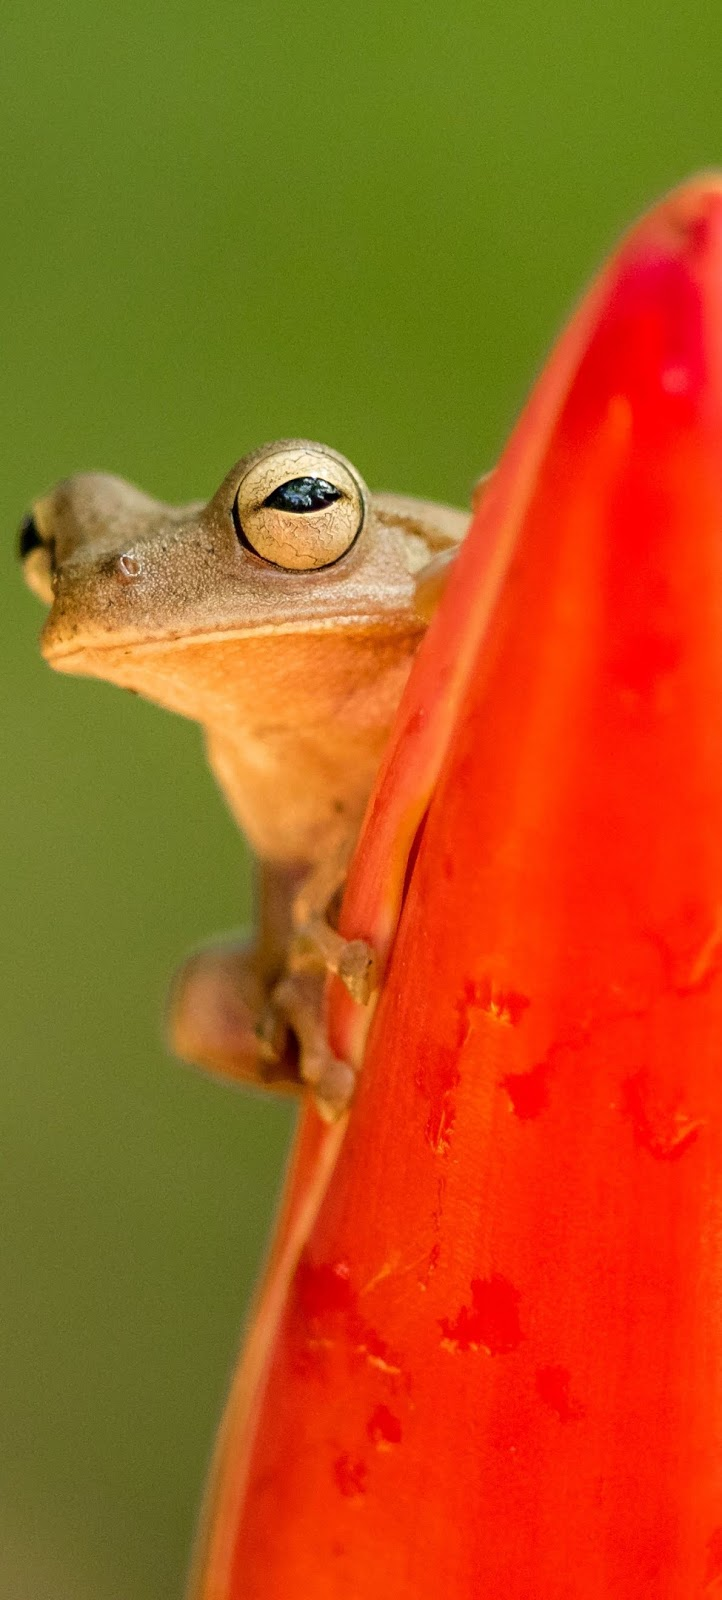 Southern brown tree frog.